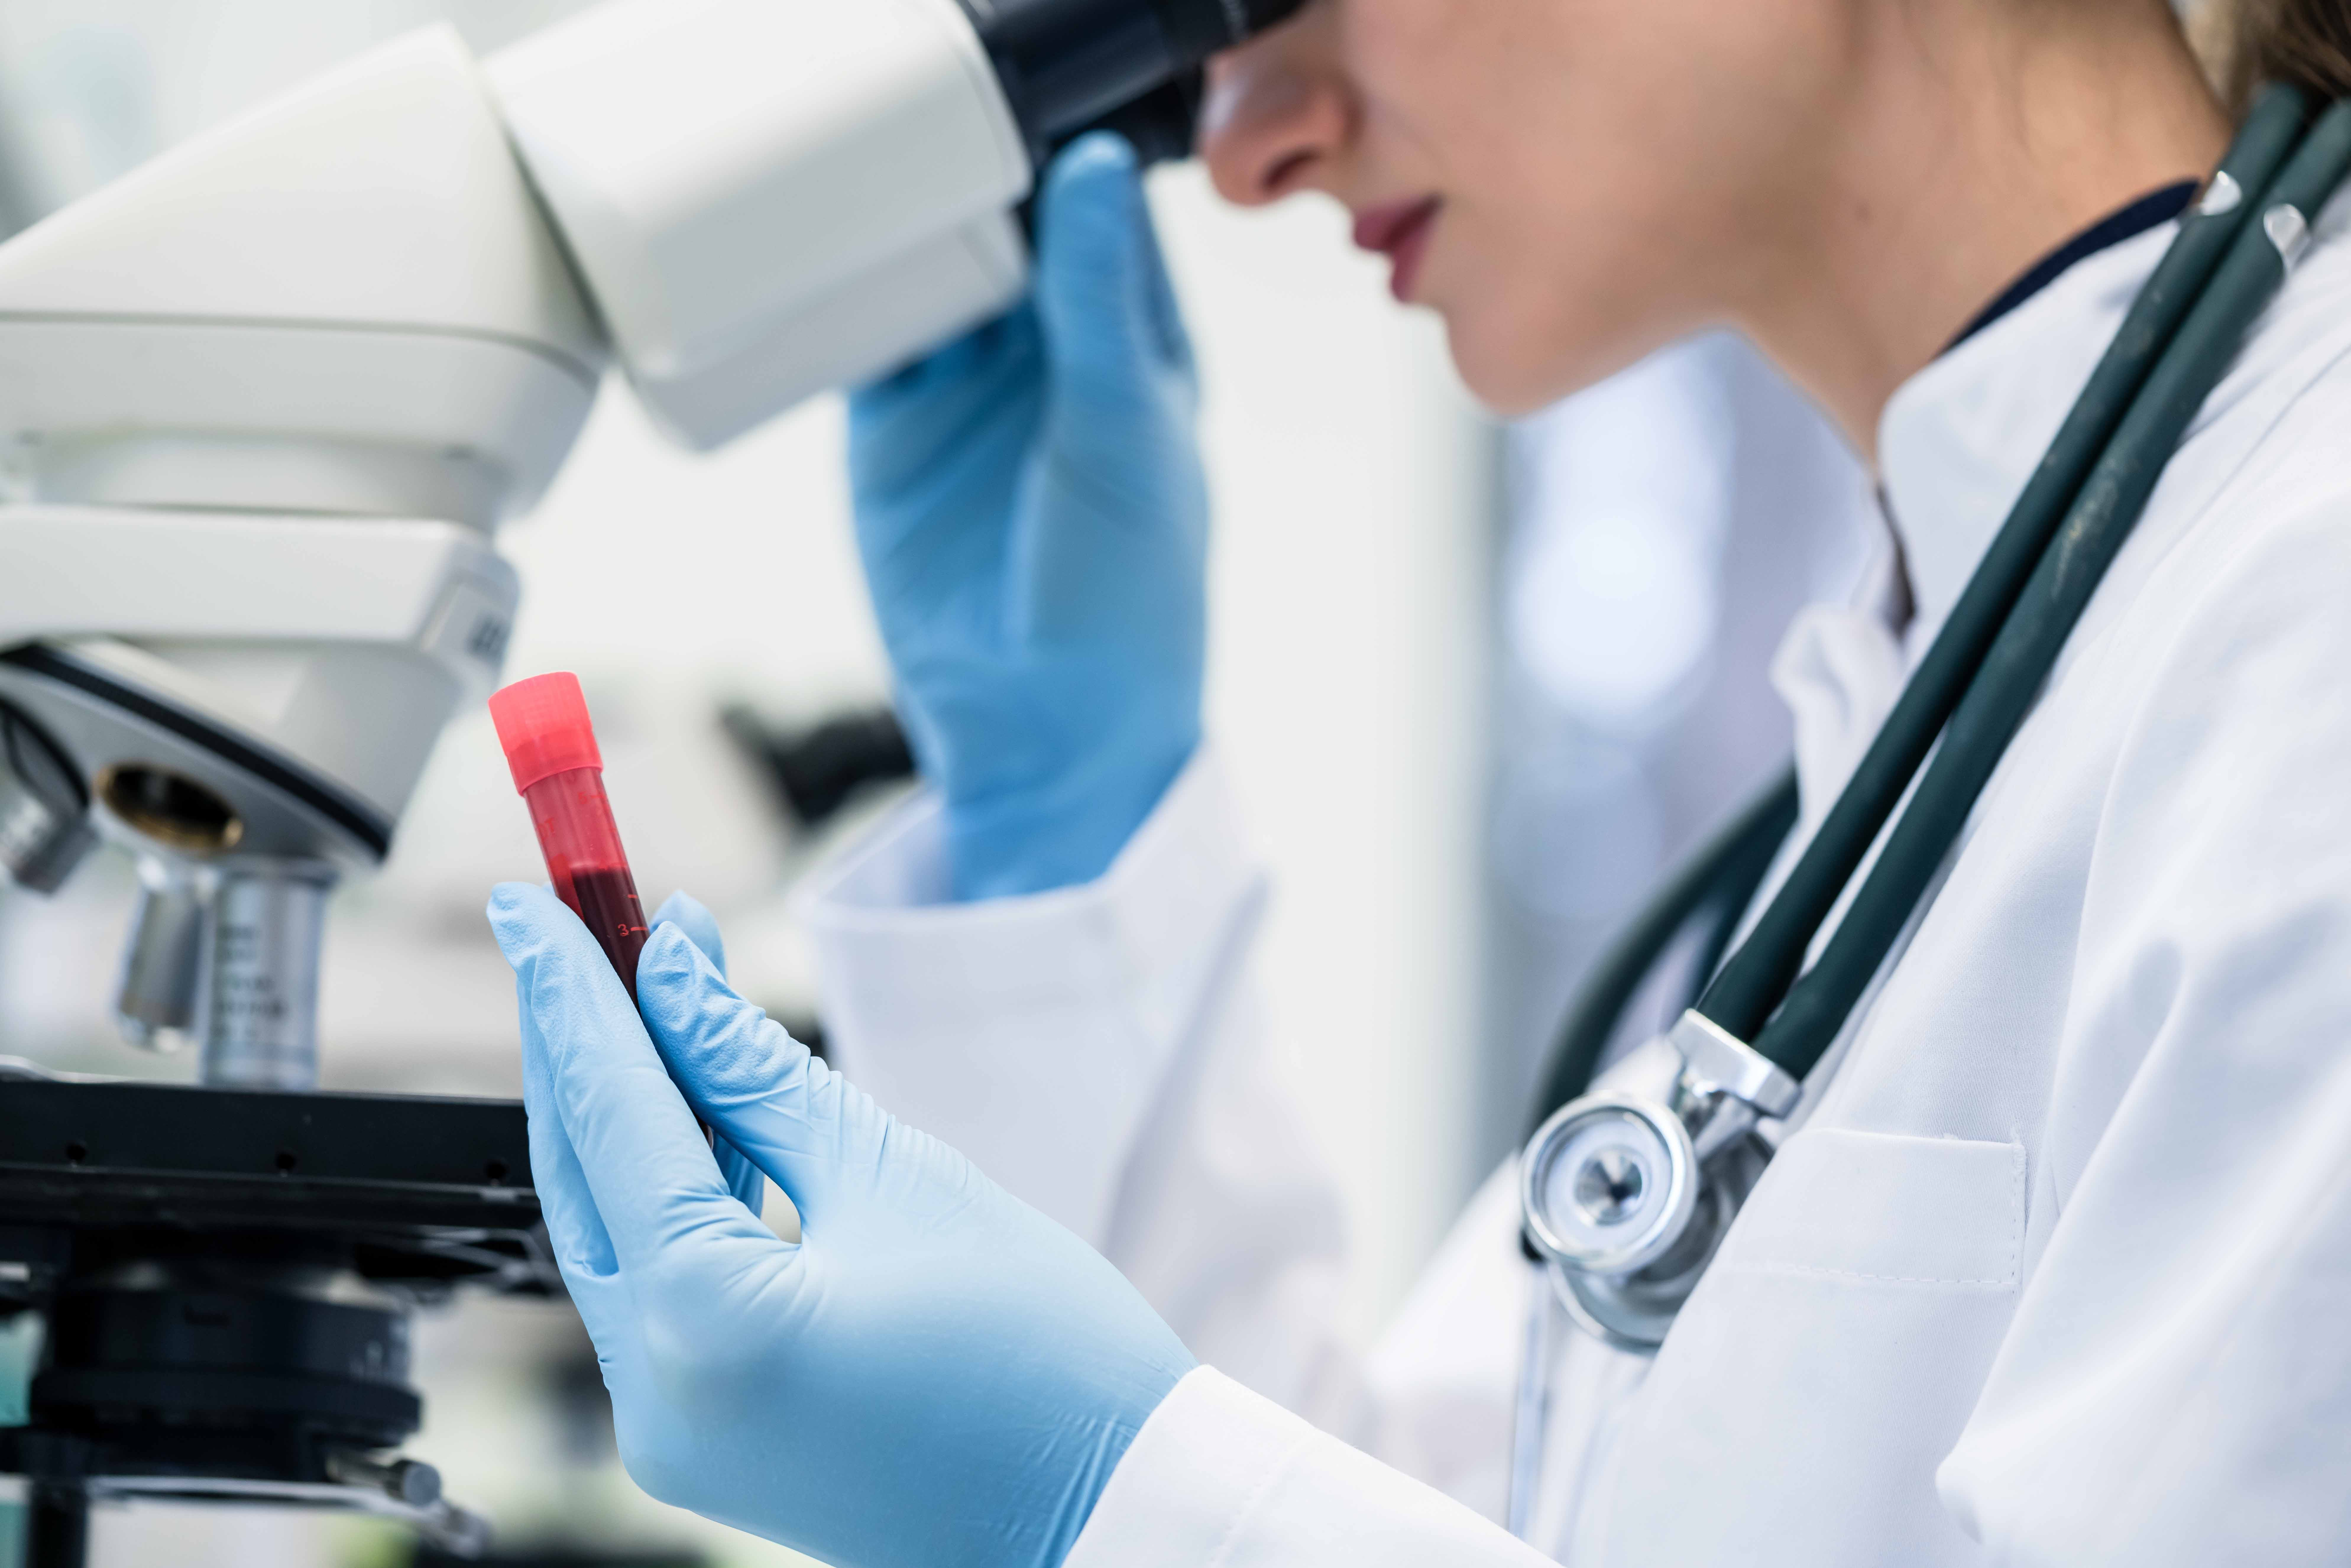 Woman examining blood sample under microscope in medical or scientific laboratory